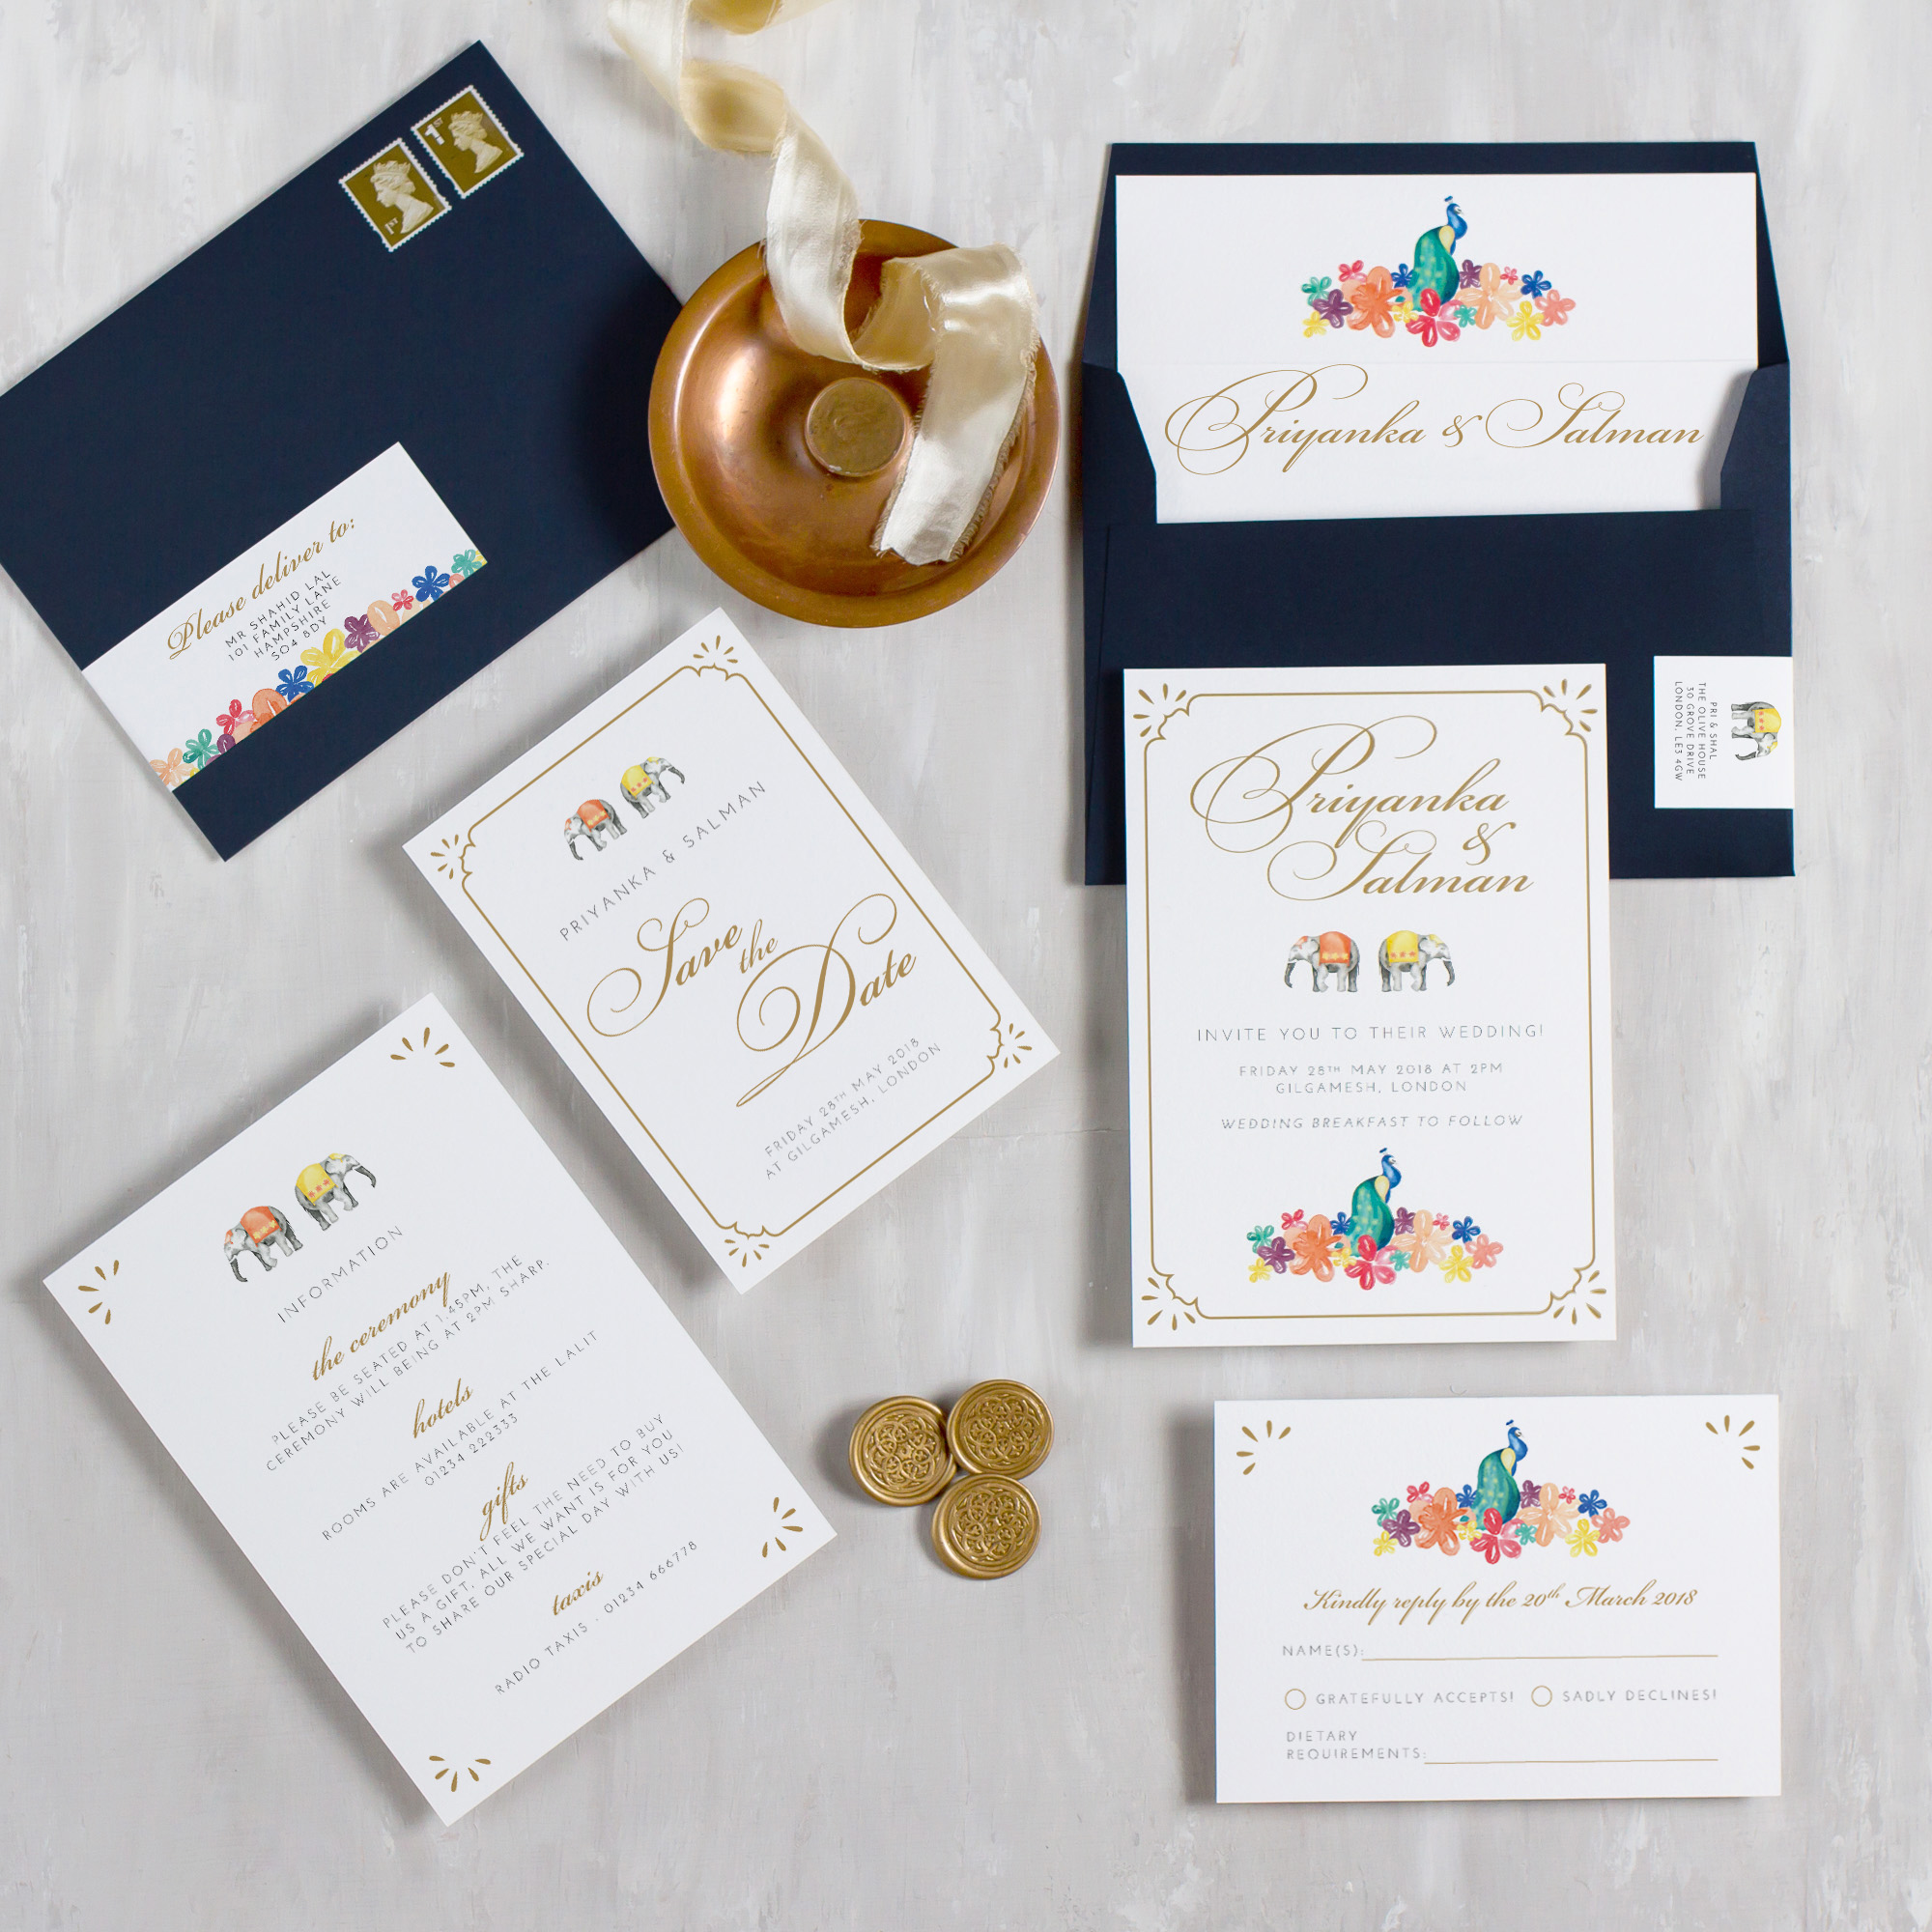 Indian-Summer-Wedding-Stationery-Luxury-Unique-Hand-Painted-Botanical-Peacock-Elephant-Summer-Bright-Gold-Hand-Painted-Wedding-Invitation-Collection-Pingle-Pie.jpg